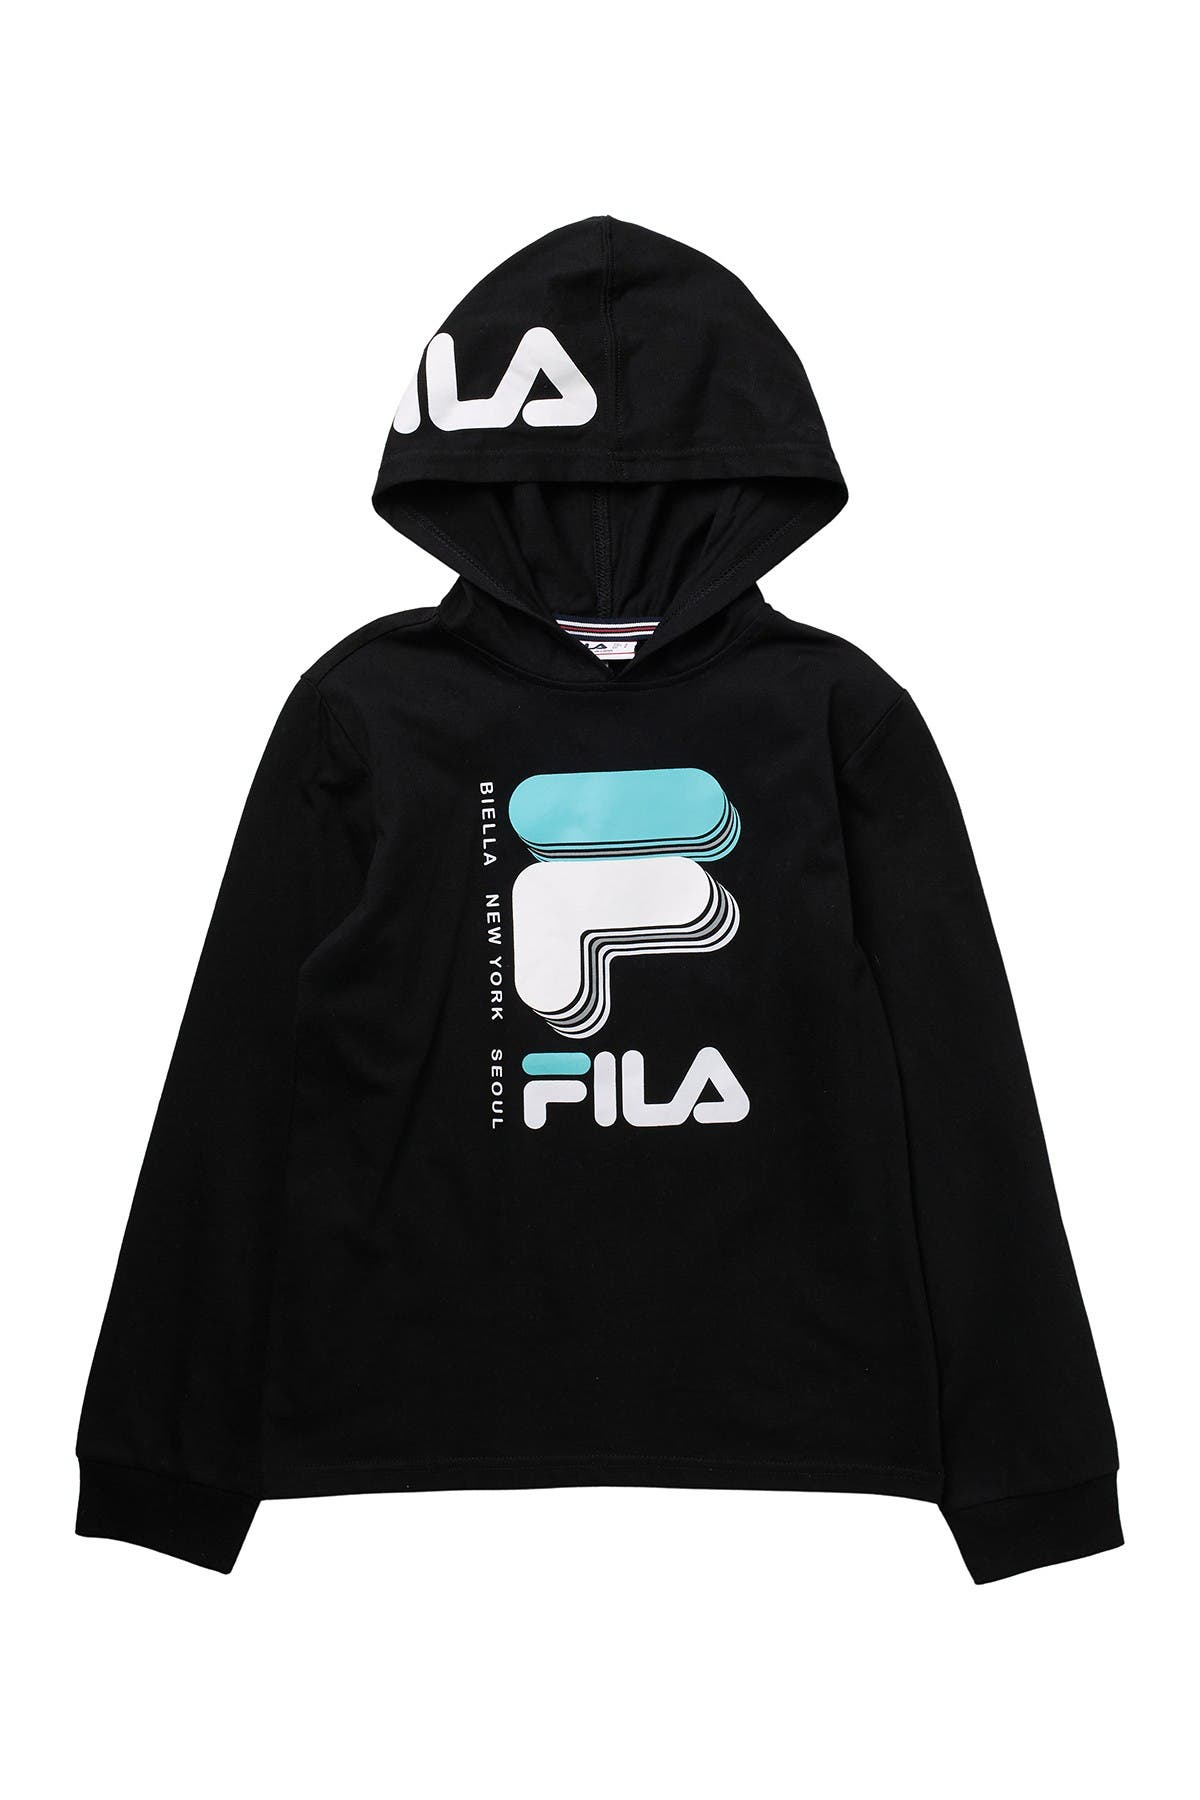 Image of FILA USA David Logo Long Sleeve Hoodie Tee